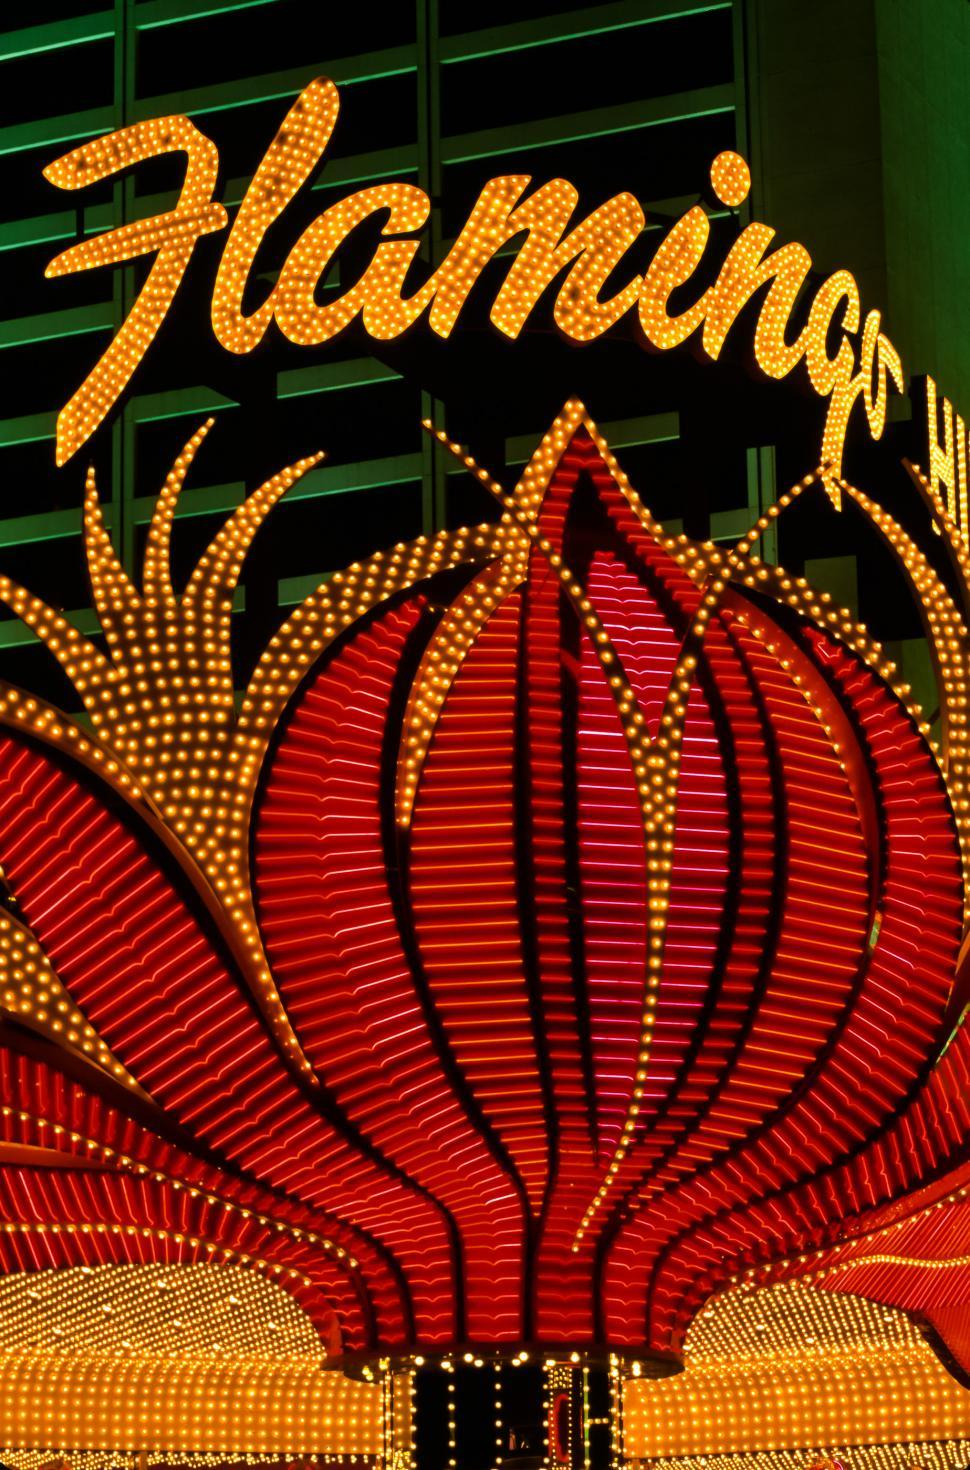 Download Free Stock HD Photo of Neon Flamingo Hotel Sign Online